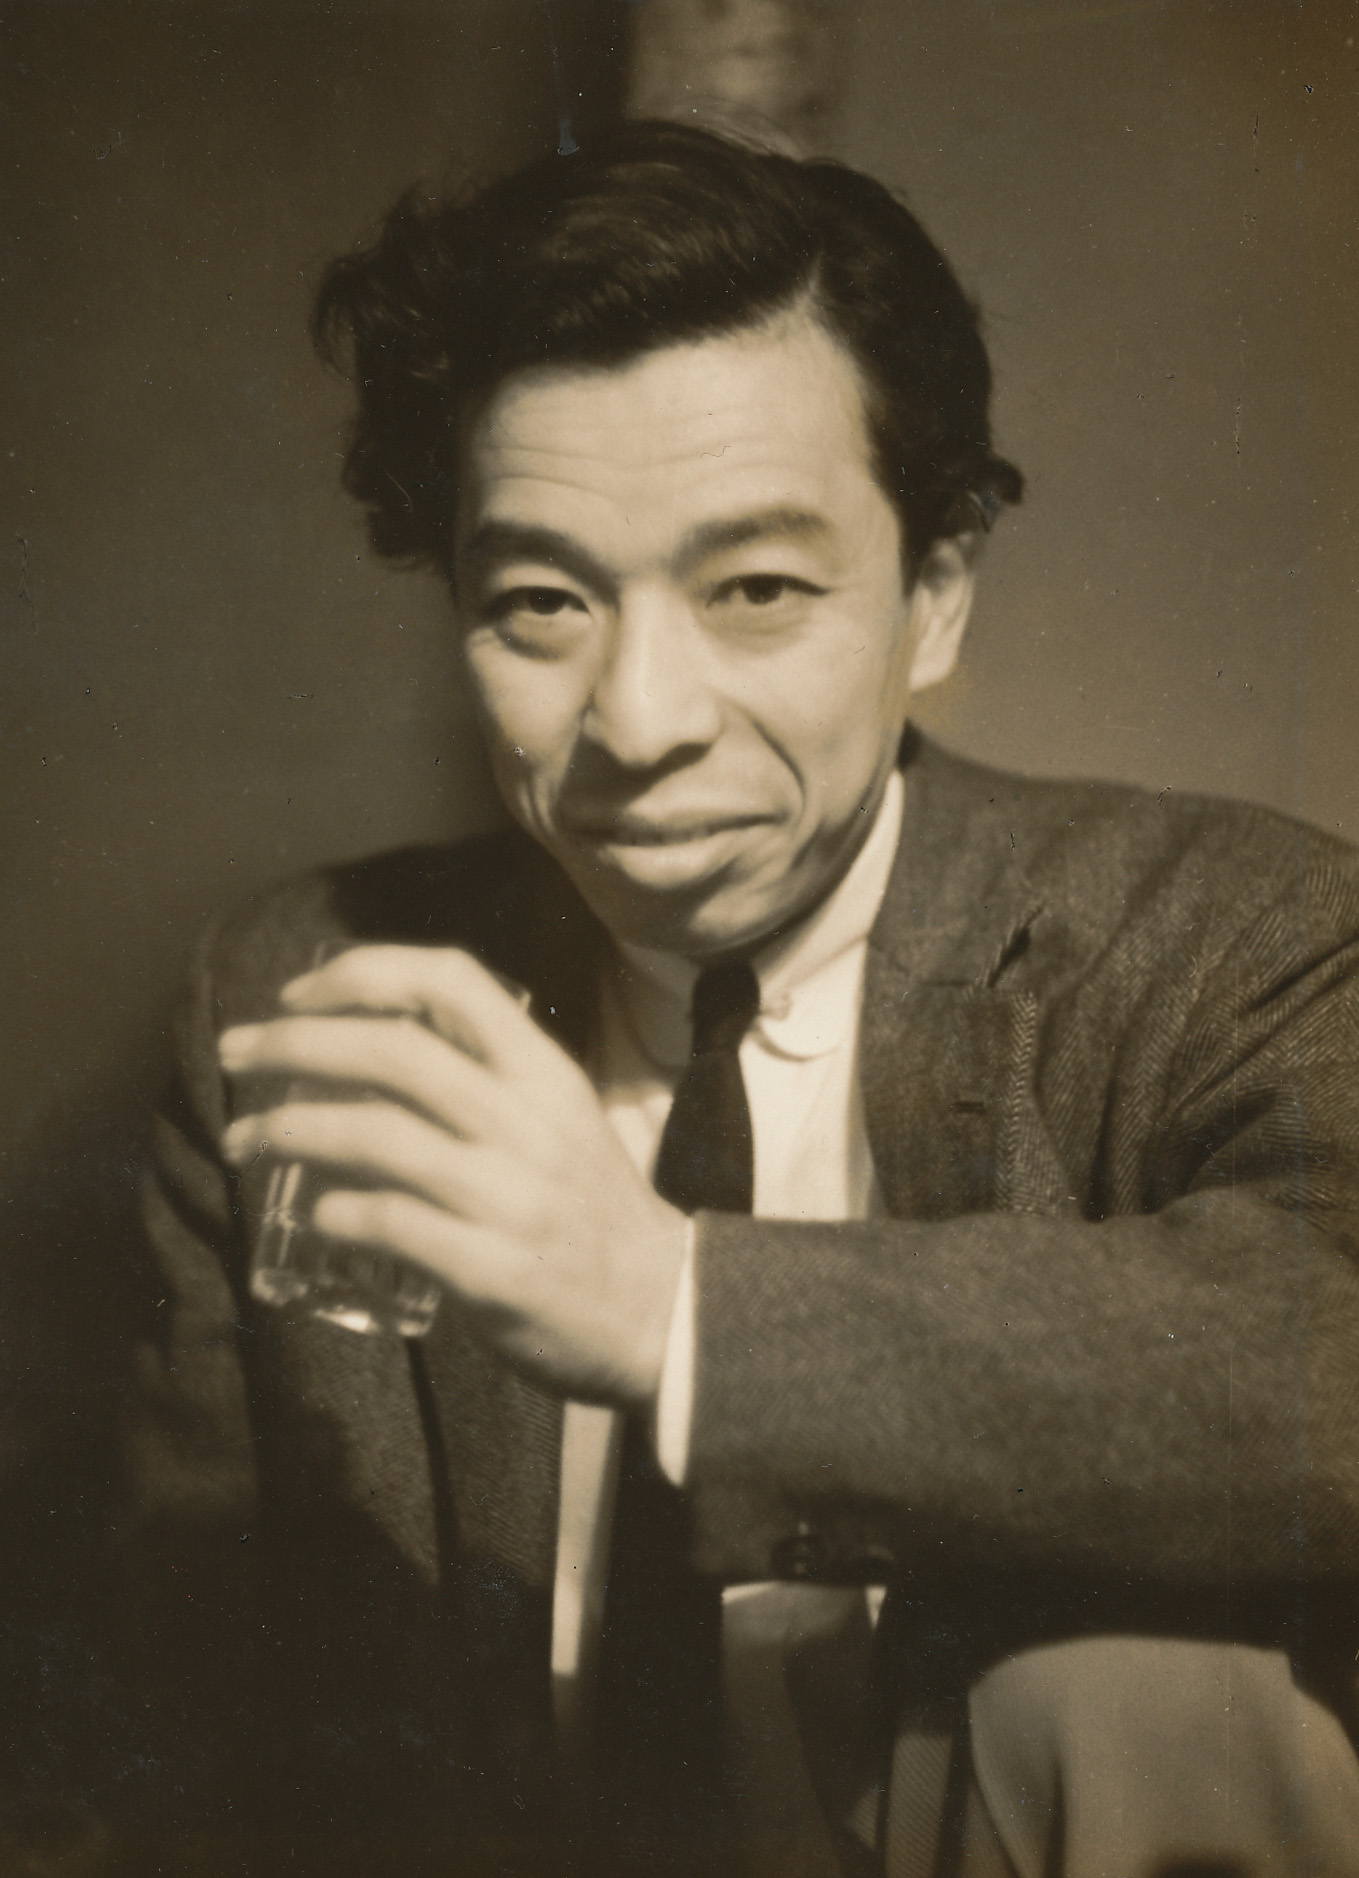 Kensuke Ishizu in Ōsaka during the early years of VAN Jacket, 1955.